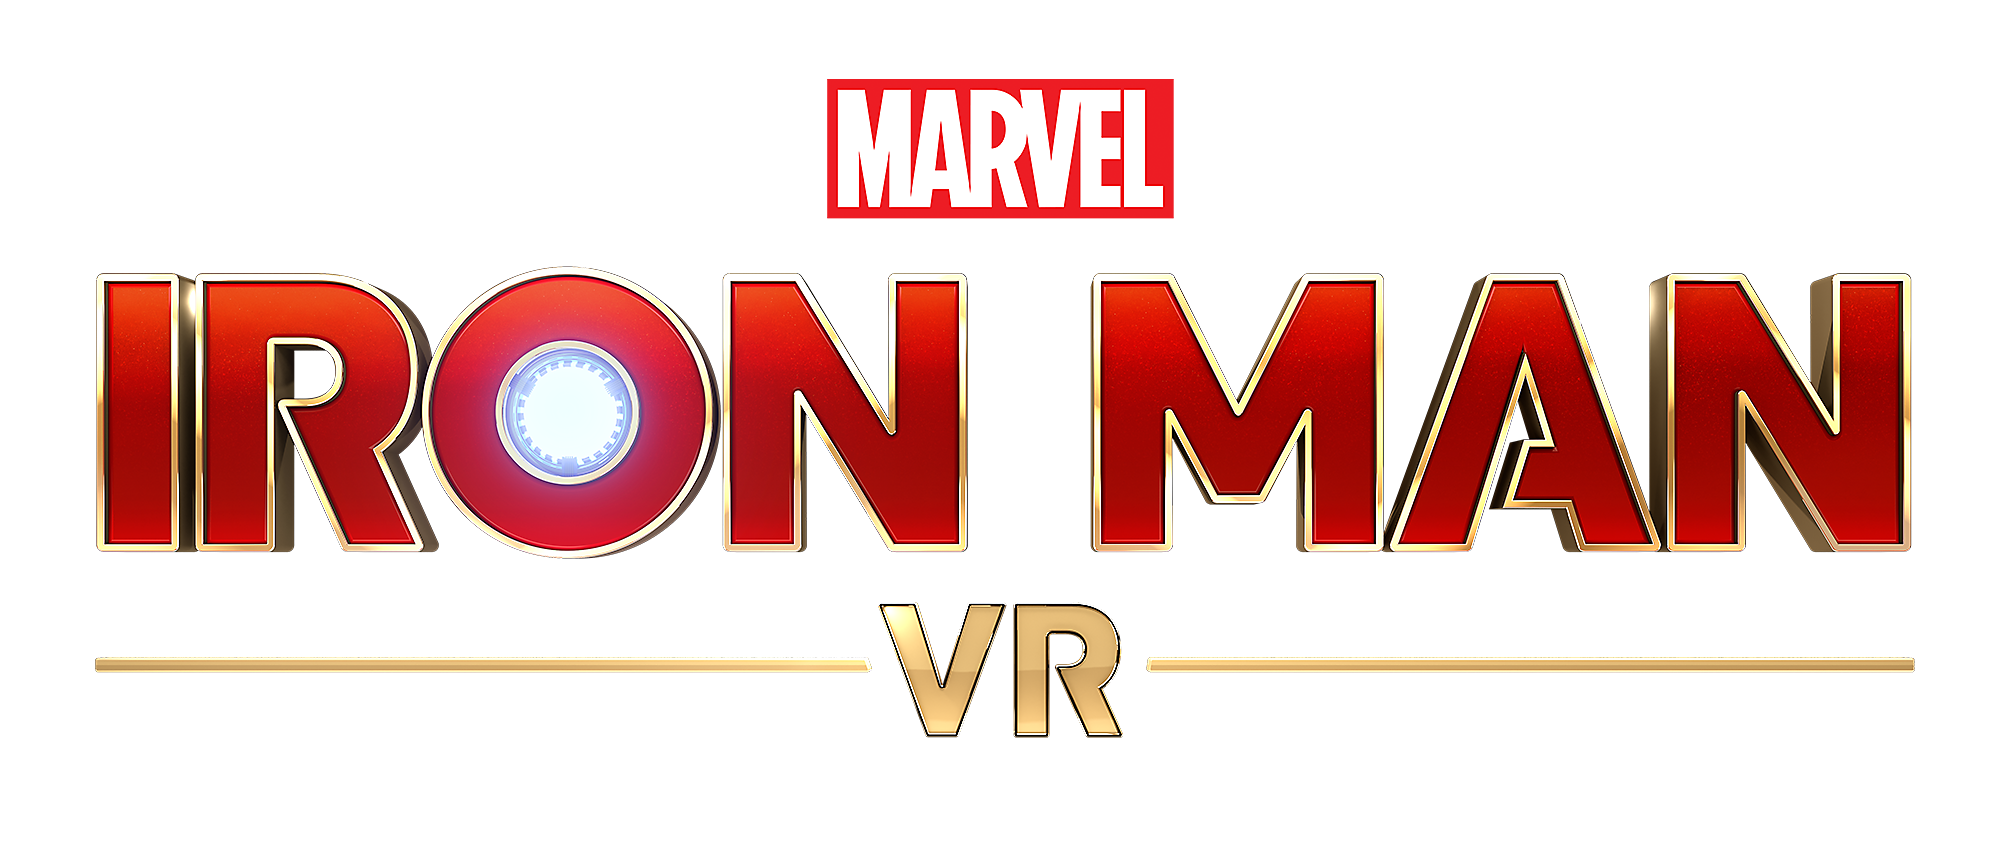 Marvel's Iron Man VR logo